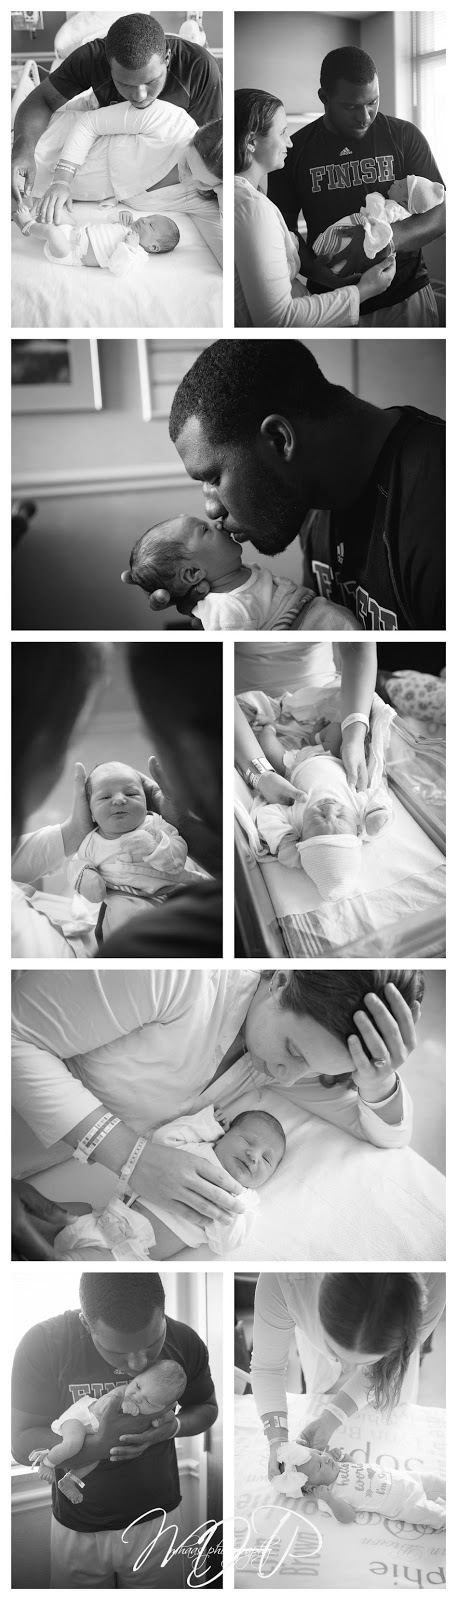 17 hours old, baby girl, dad and daughter, first moments, first-time, Floyd memorial hospital, fresh 48, hospital, kentuckiana photographer, lifestyle, mom and daughter, newborn, portraits, southern Indiana